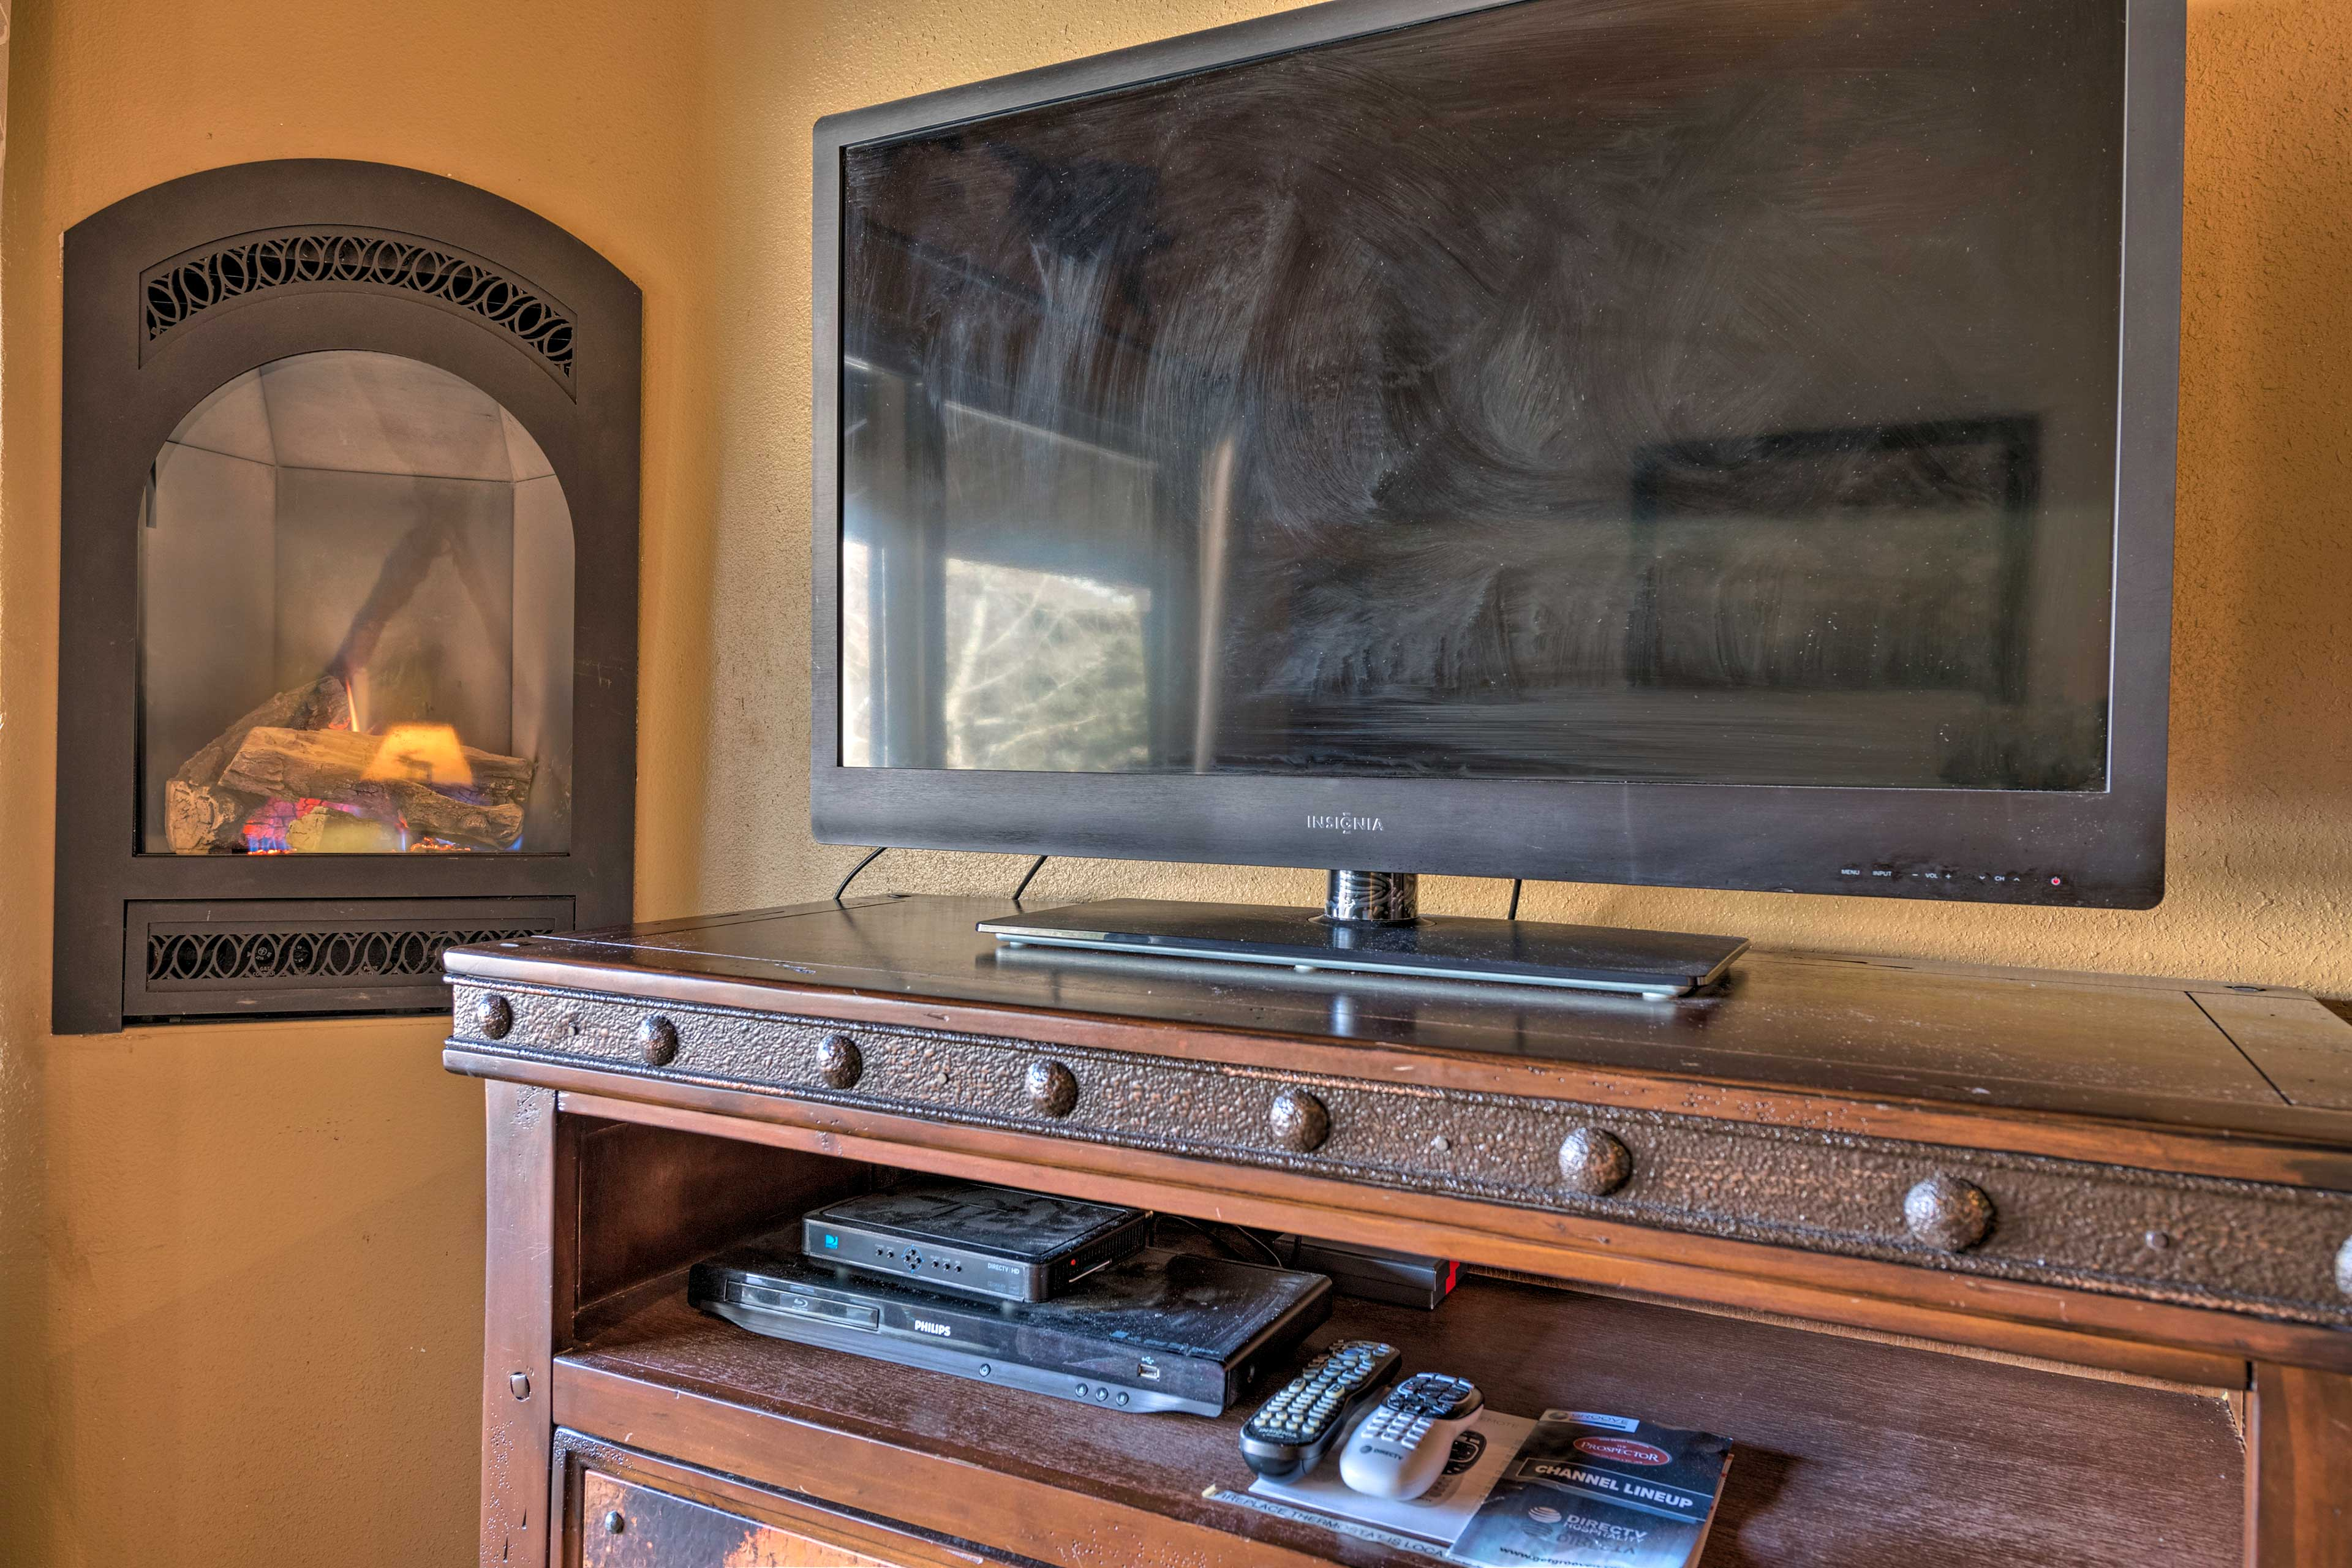 The flat screen cable TV is equipped with a sports package, DVR and Cinemax.